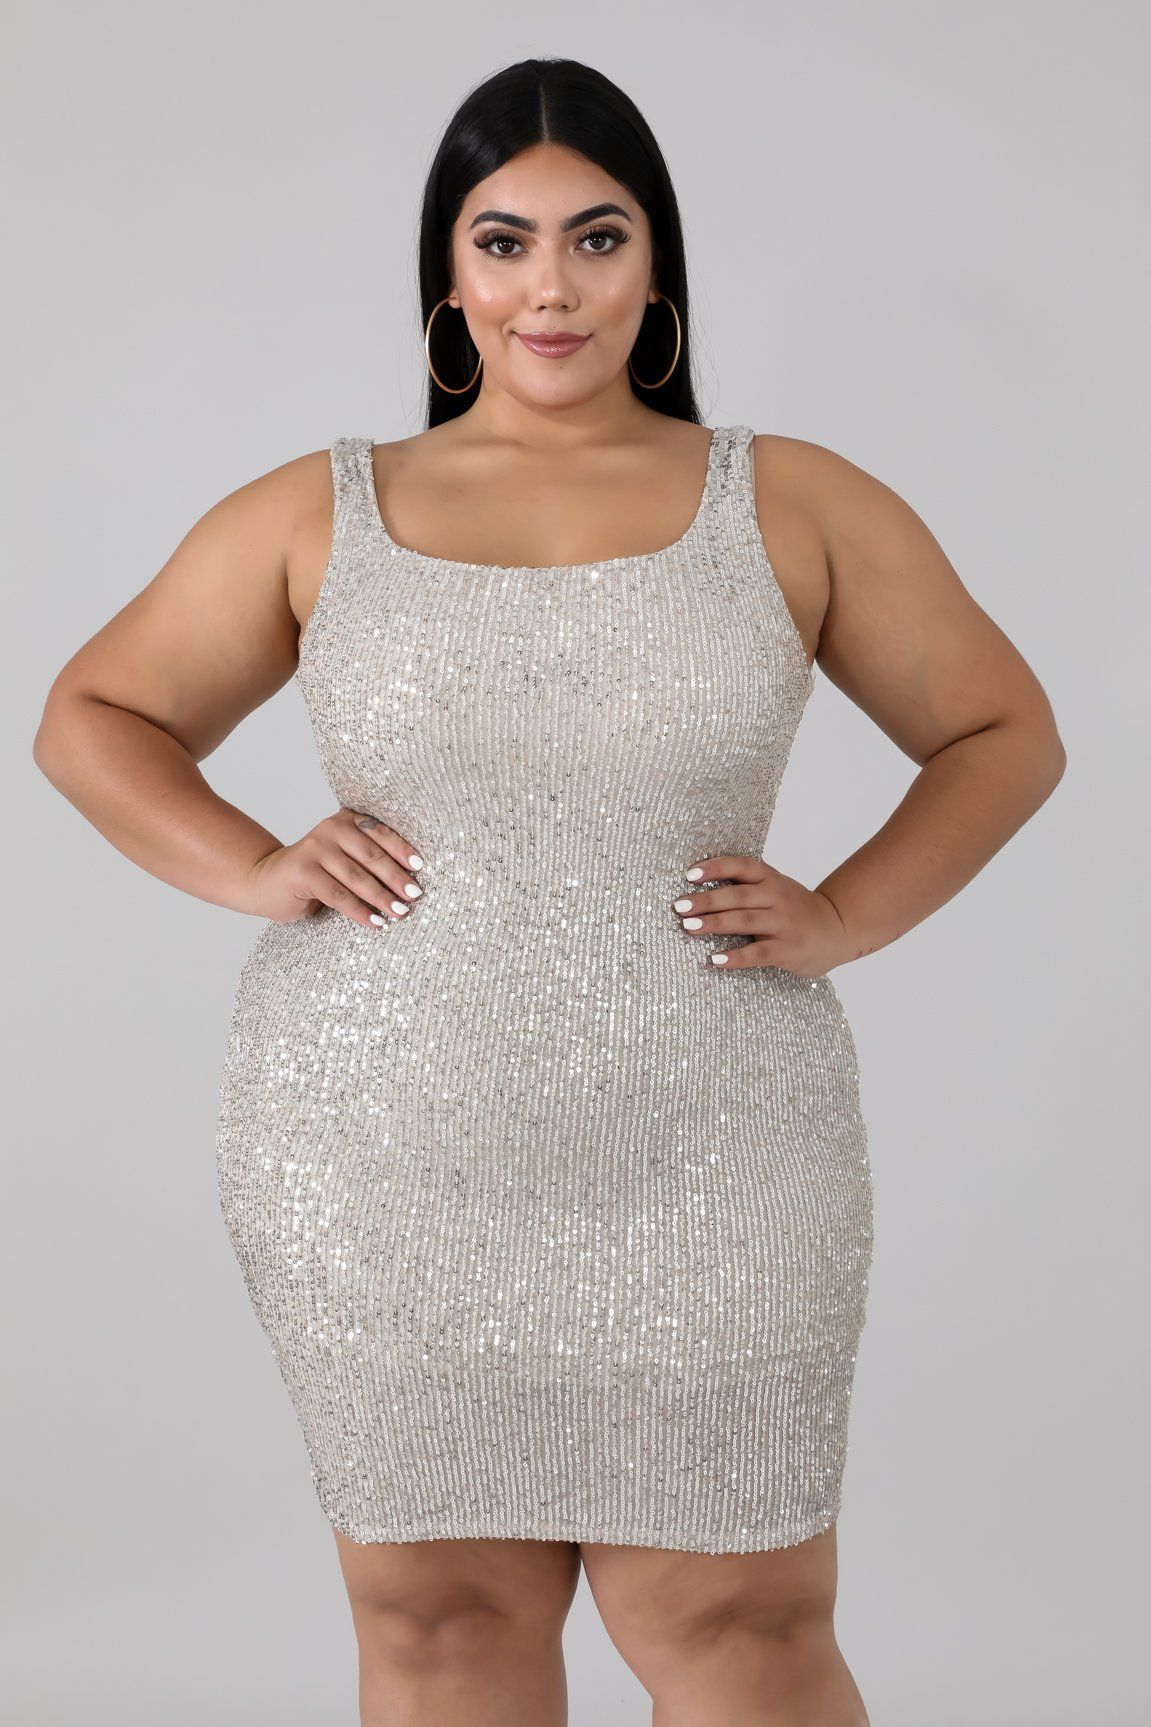 Style 3436 X Description This Sequin Prime Body Con Dress Features A Stretchy Fabric Round Neckline Underl Bodycon Dress Plus Size Going Out Outfits Dresses [ 1727 x 1151 Pixel ]